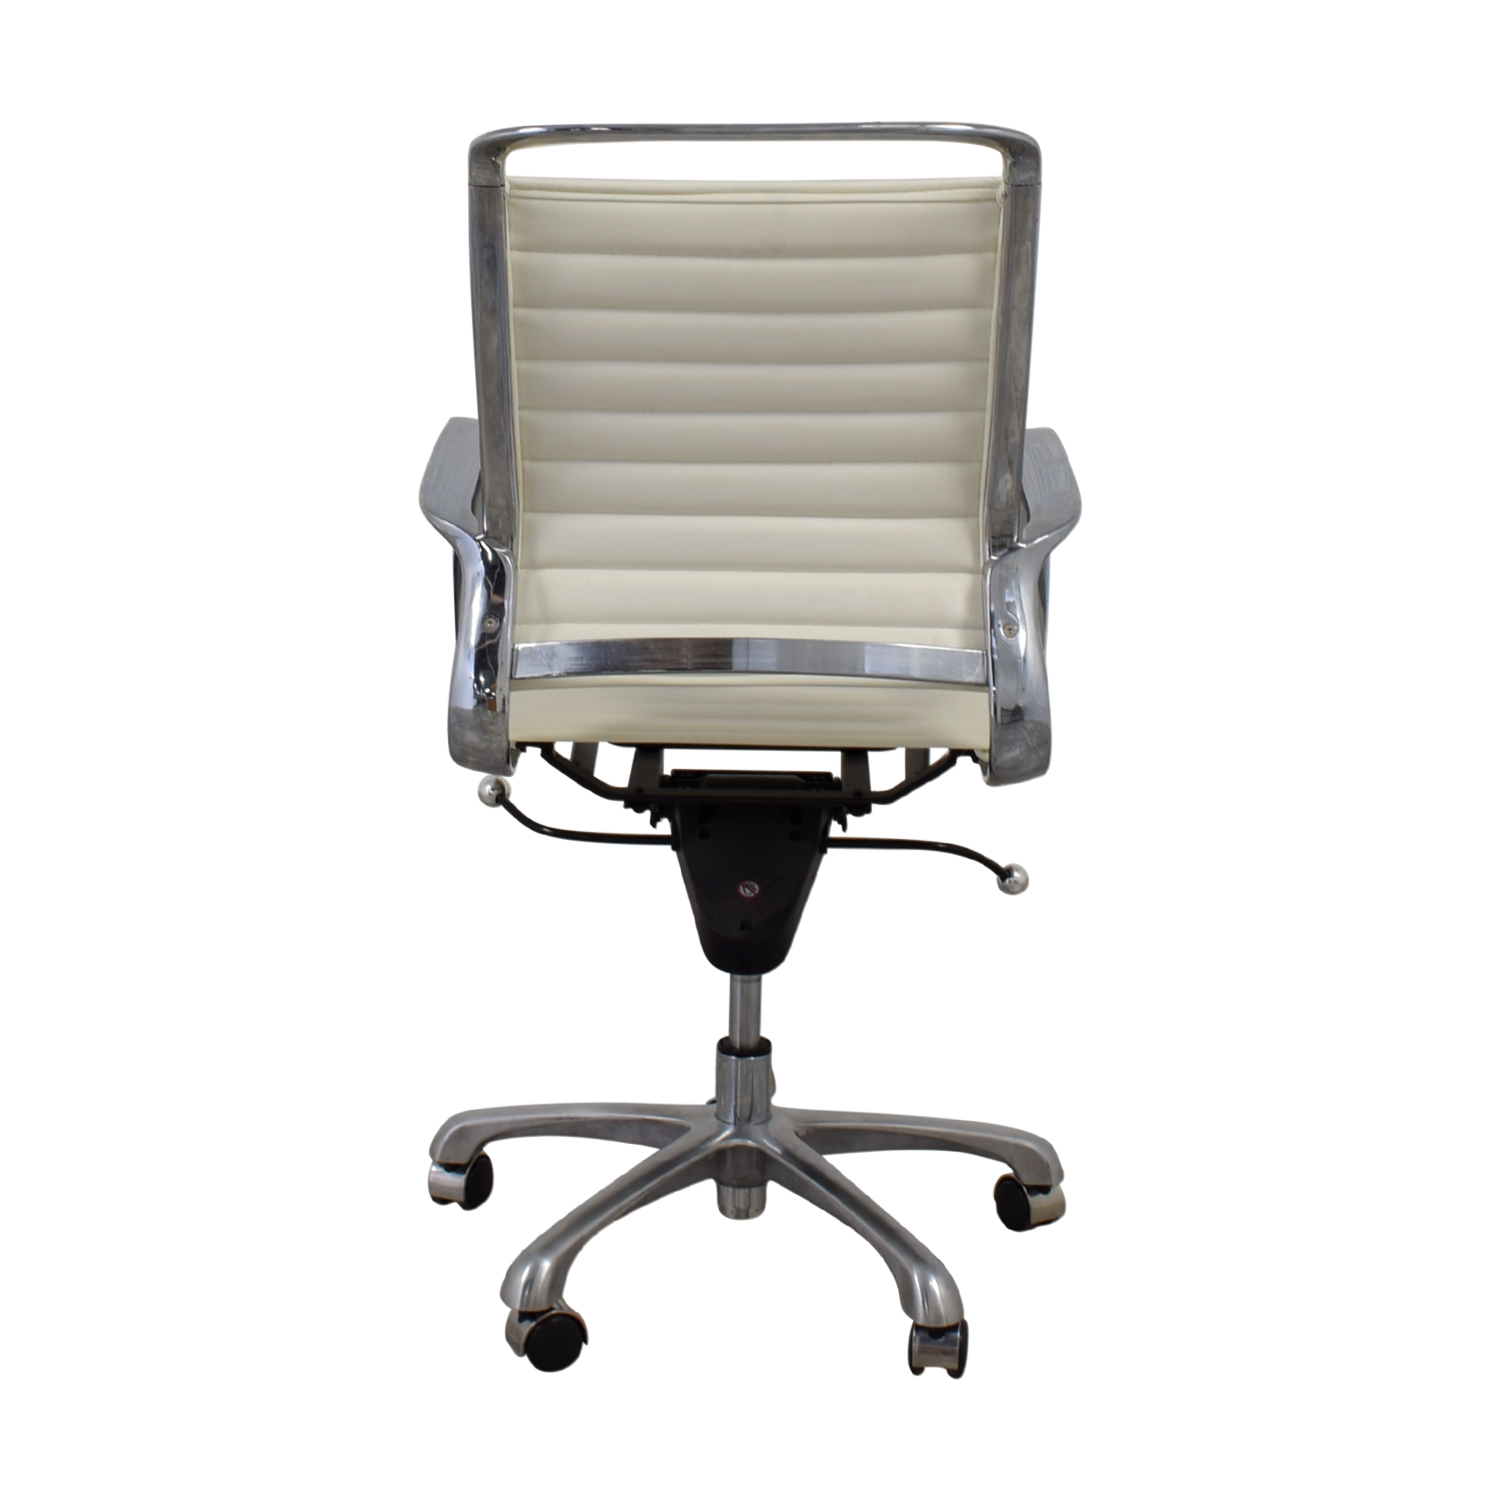 Modway Leather Office Chair sale